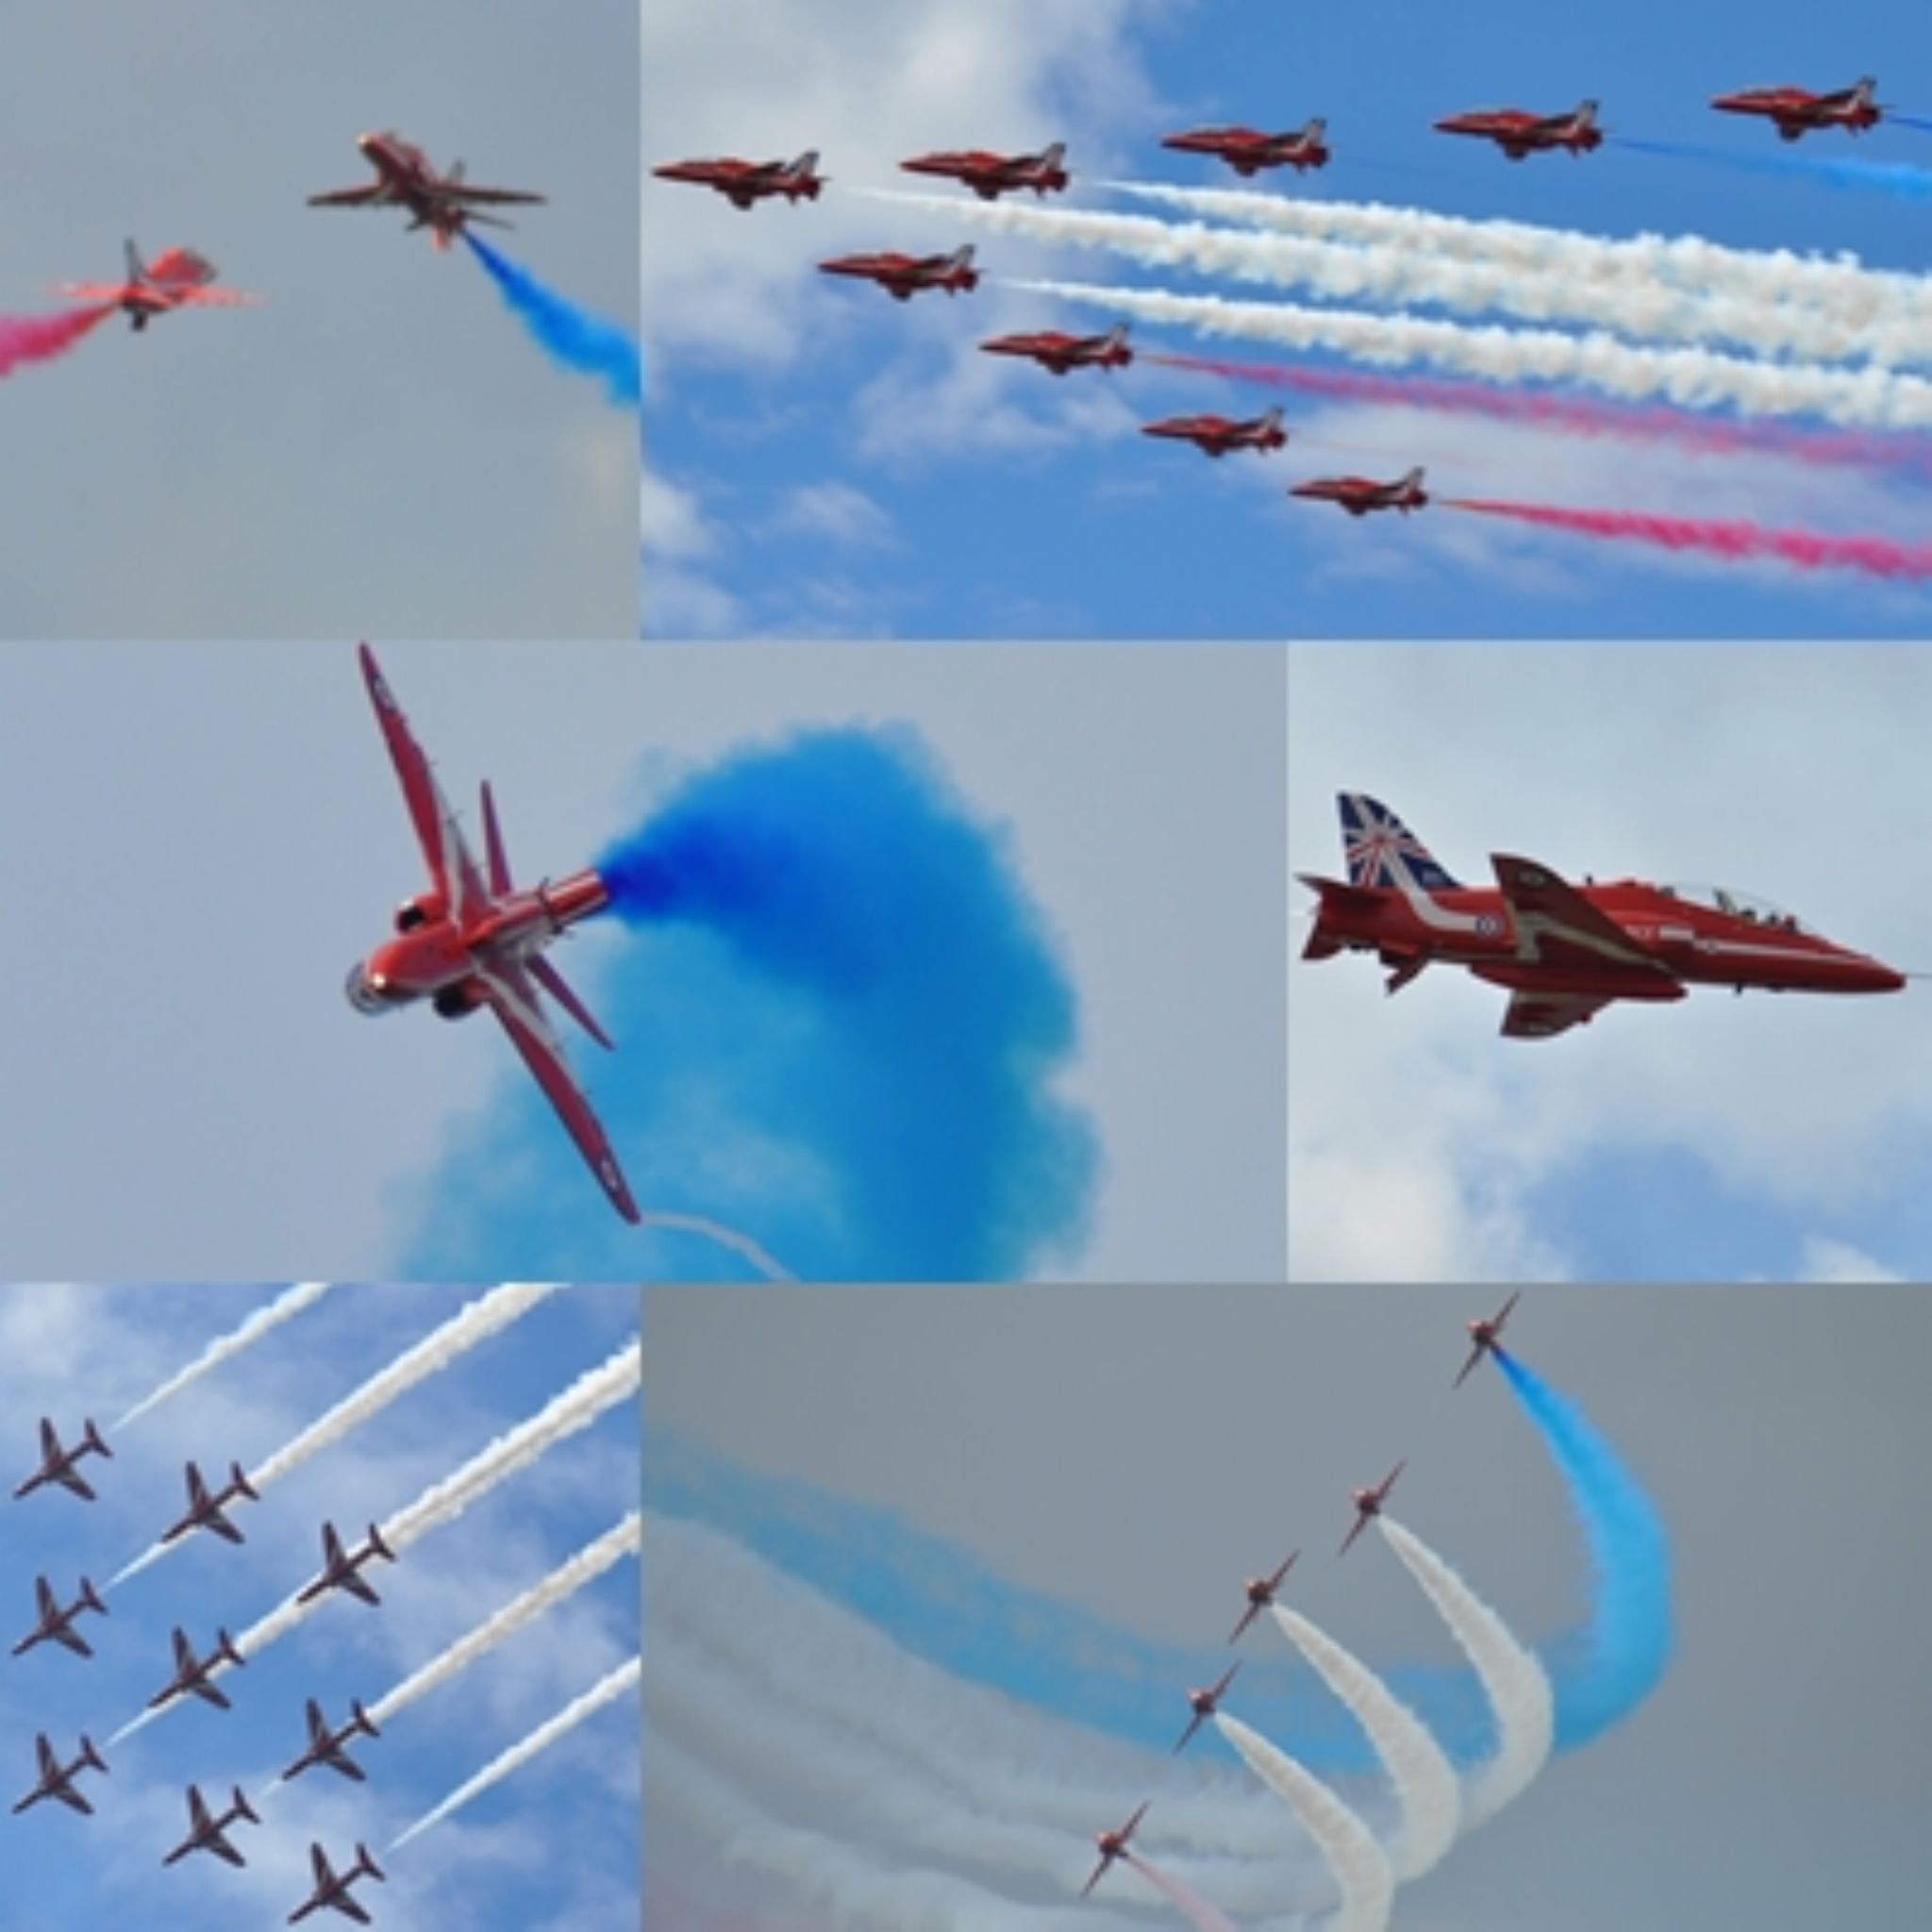 AIR SHOW by Olly Oliver